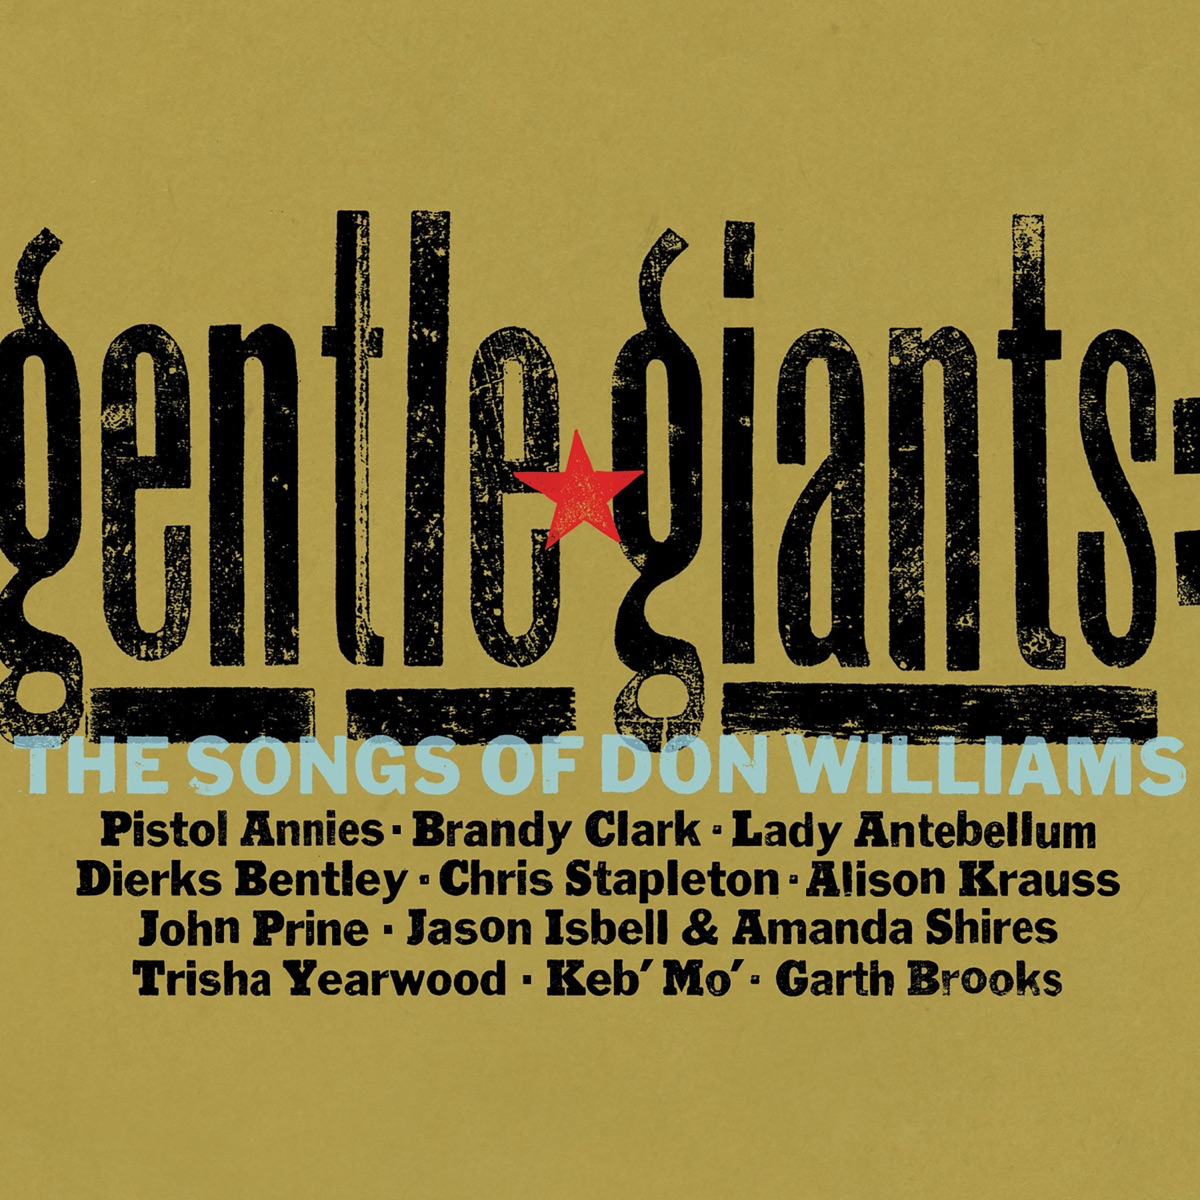 Gentle Giants The Songs of Don Williams Various Artists CD cover